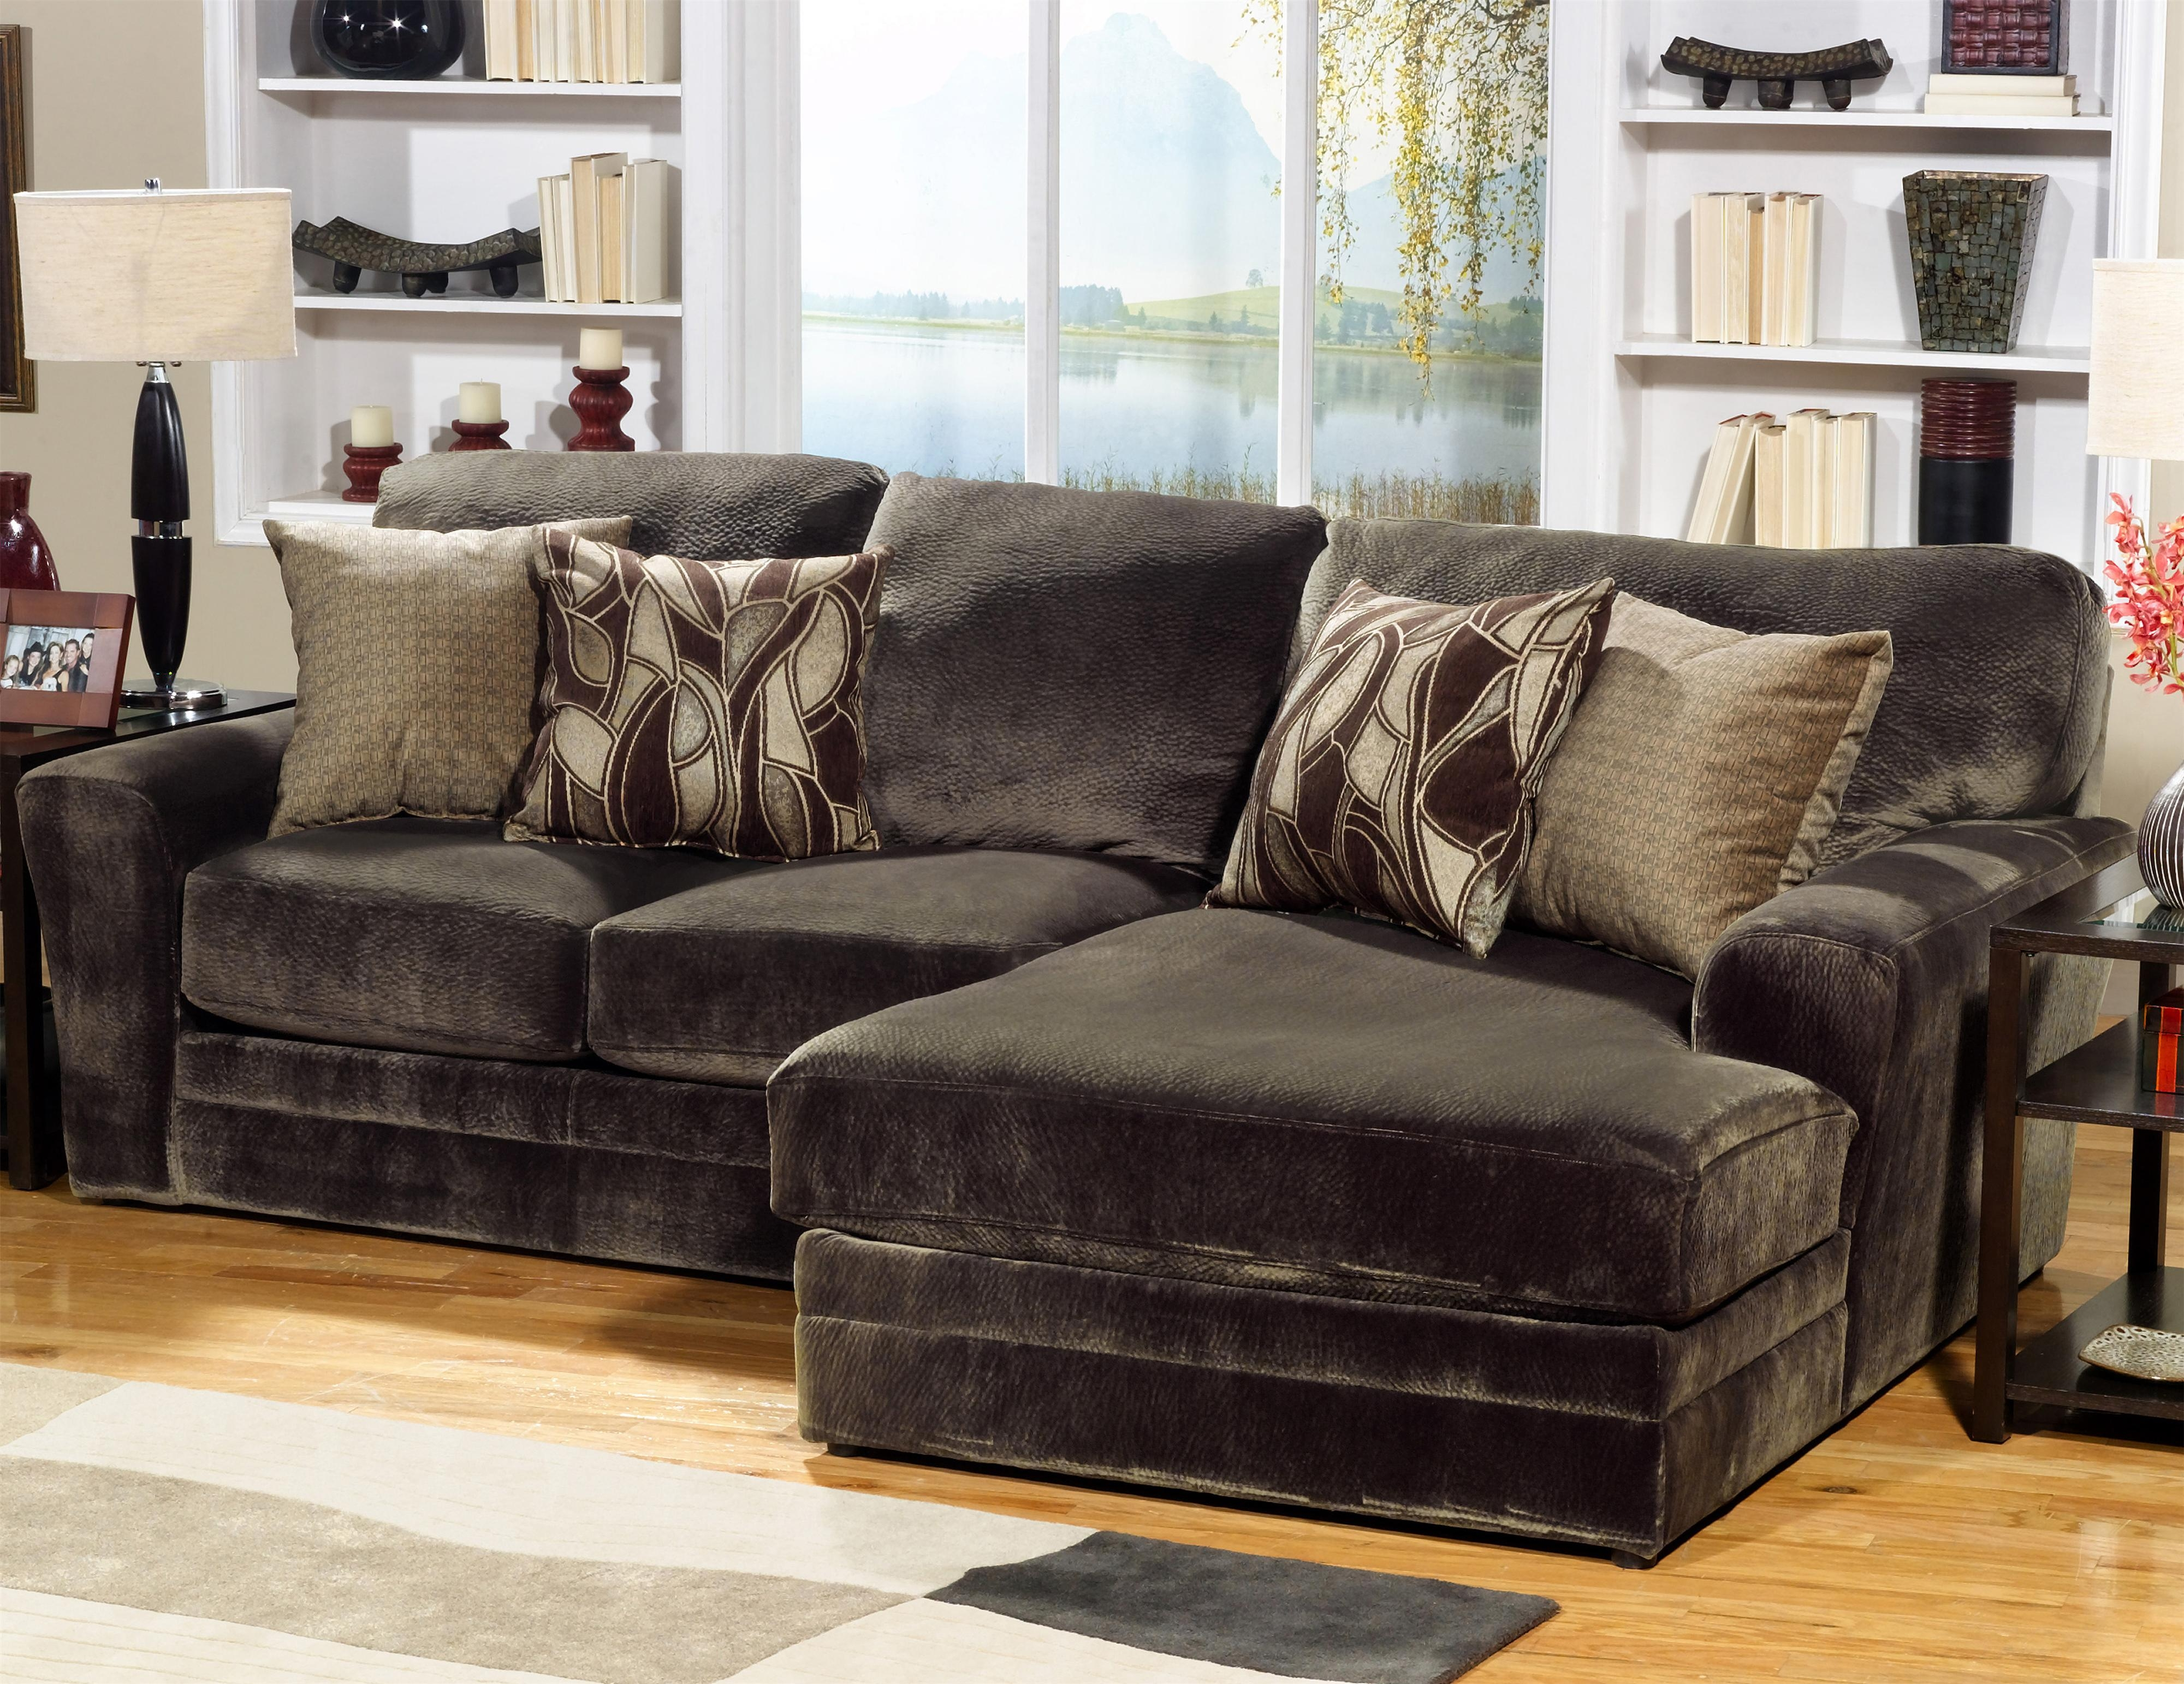 10 Terrific Two Piece Sectional Sofa With Chaise Picture Ideas With 10 Piece Sectional Sofa (Image 5 of 15)